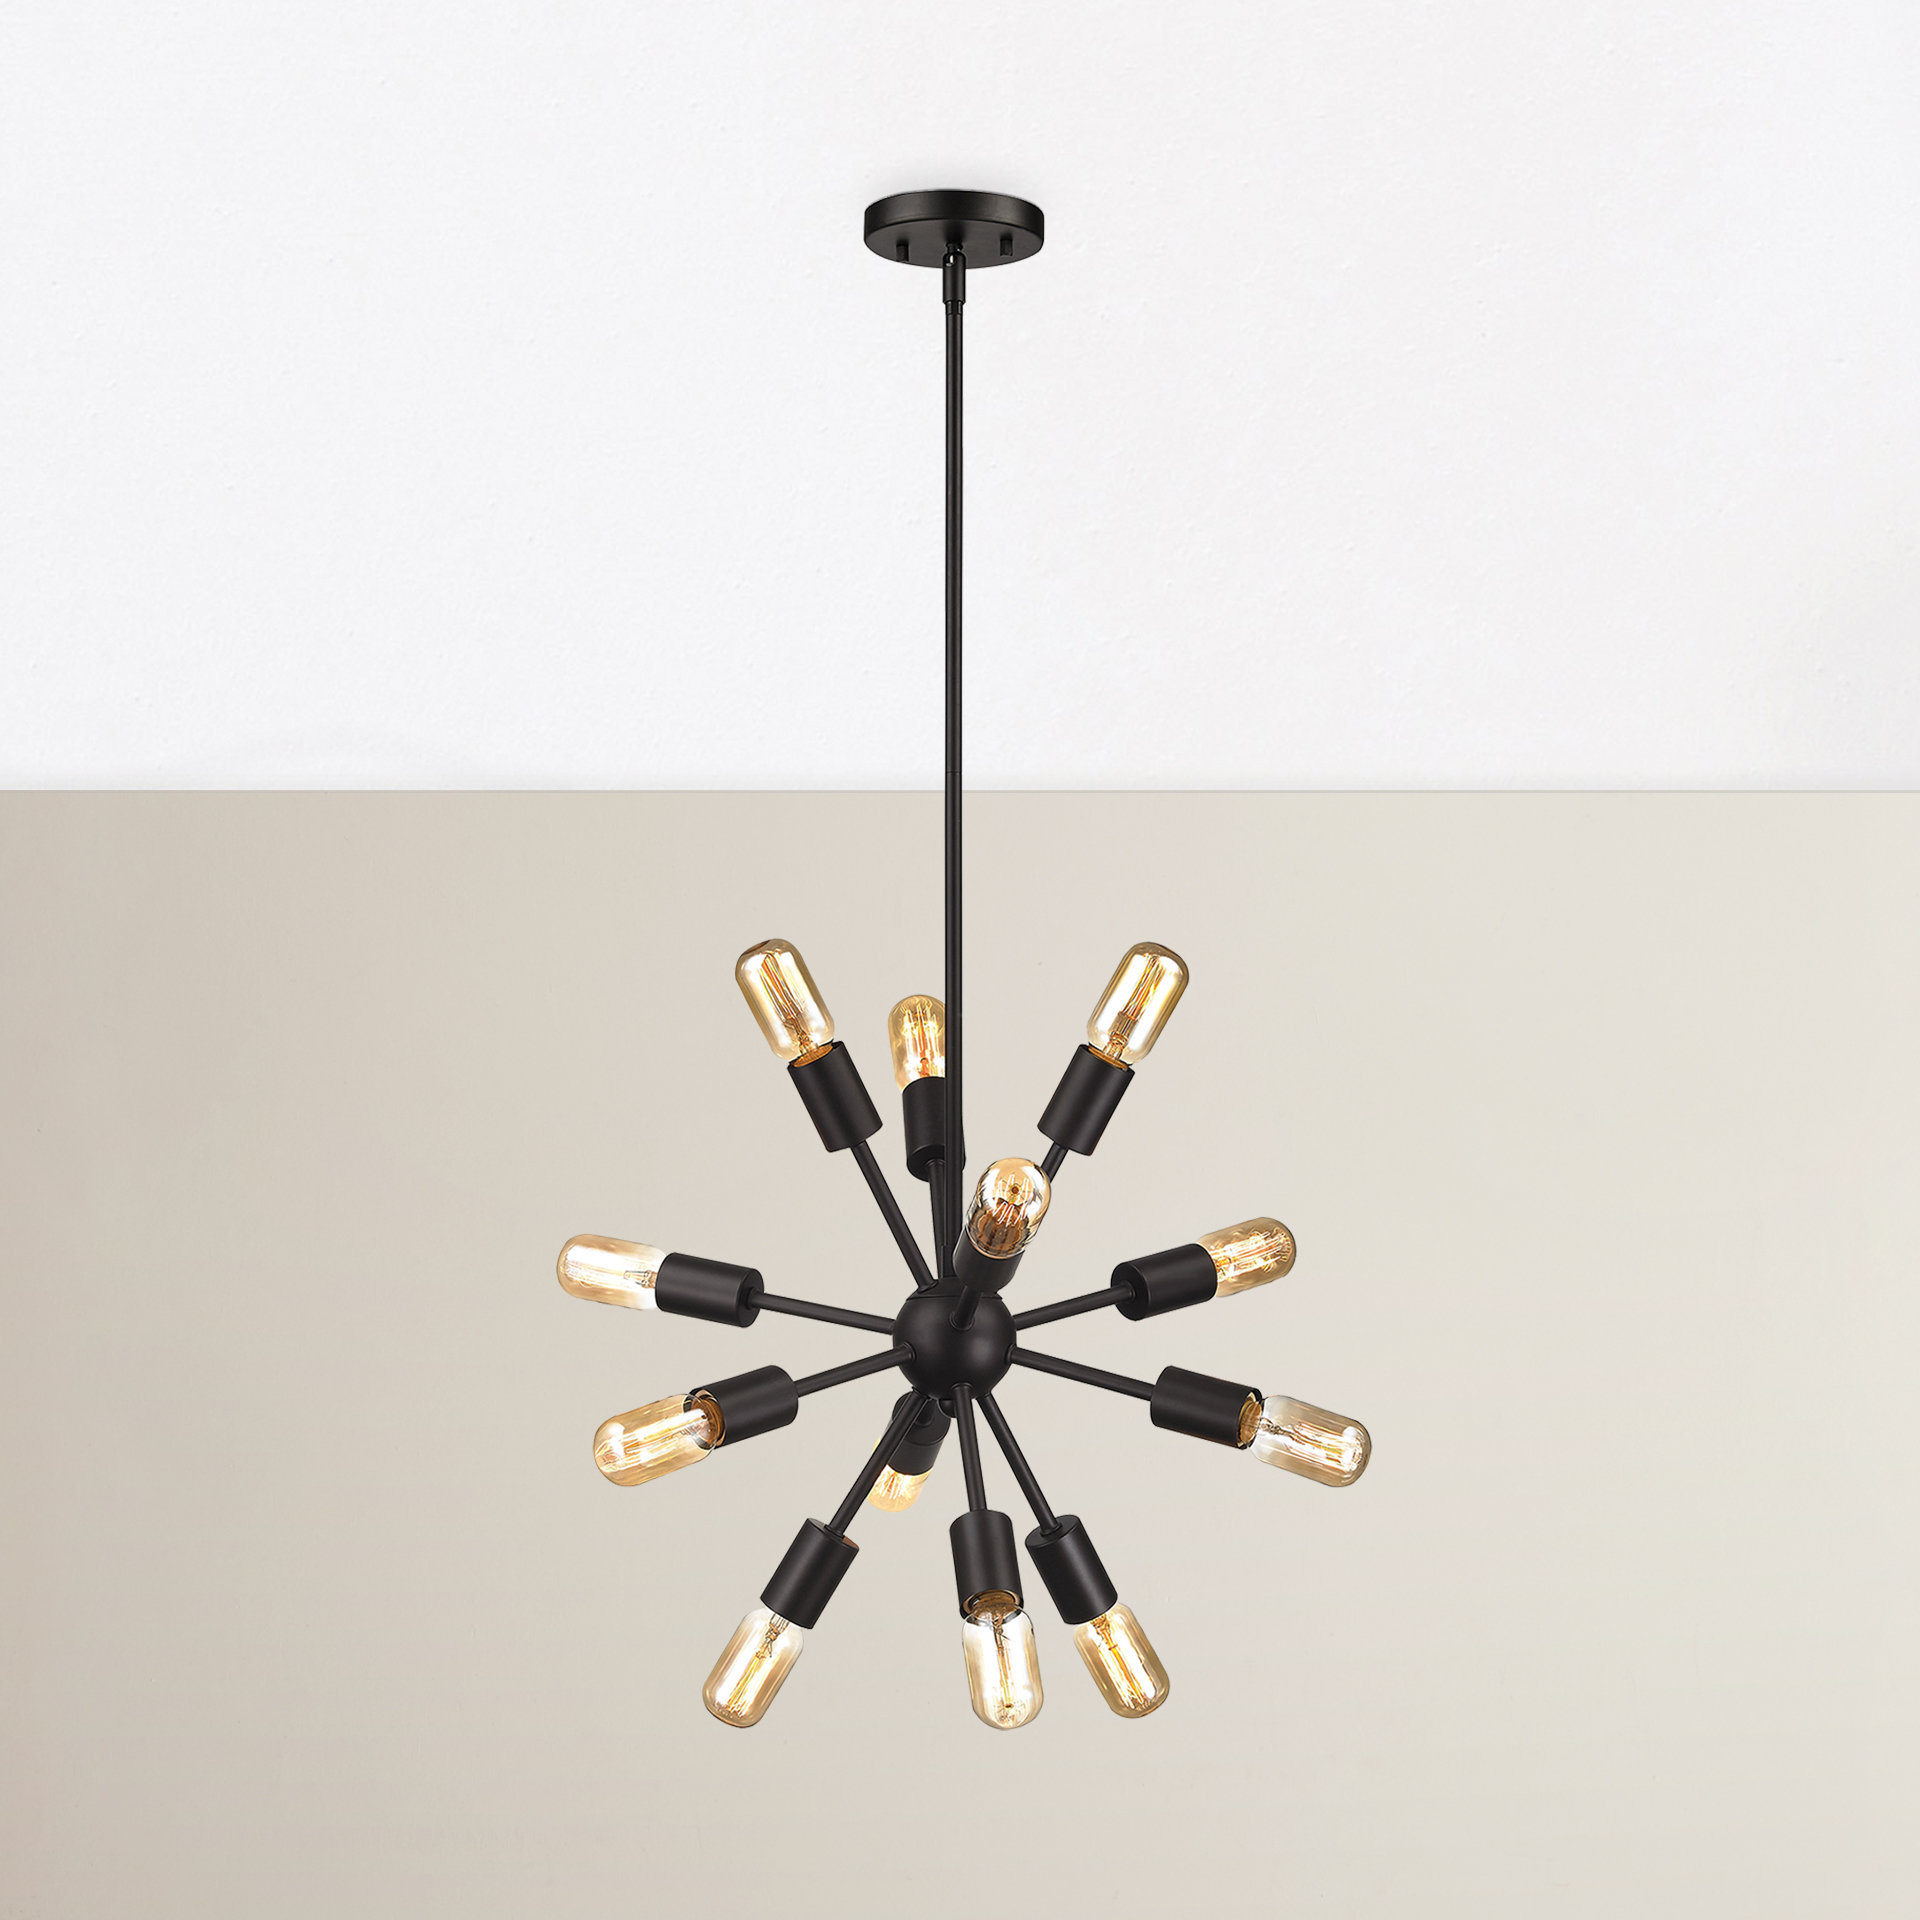 Kendall 12 Light Sputnik Chandelier With Vroman 12 Light Sputnik Chandeliers (View 8 of 30)